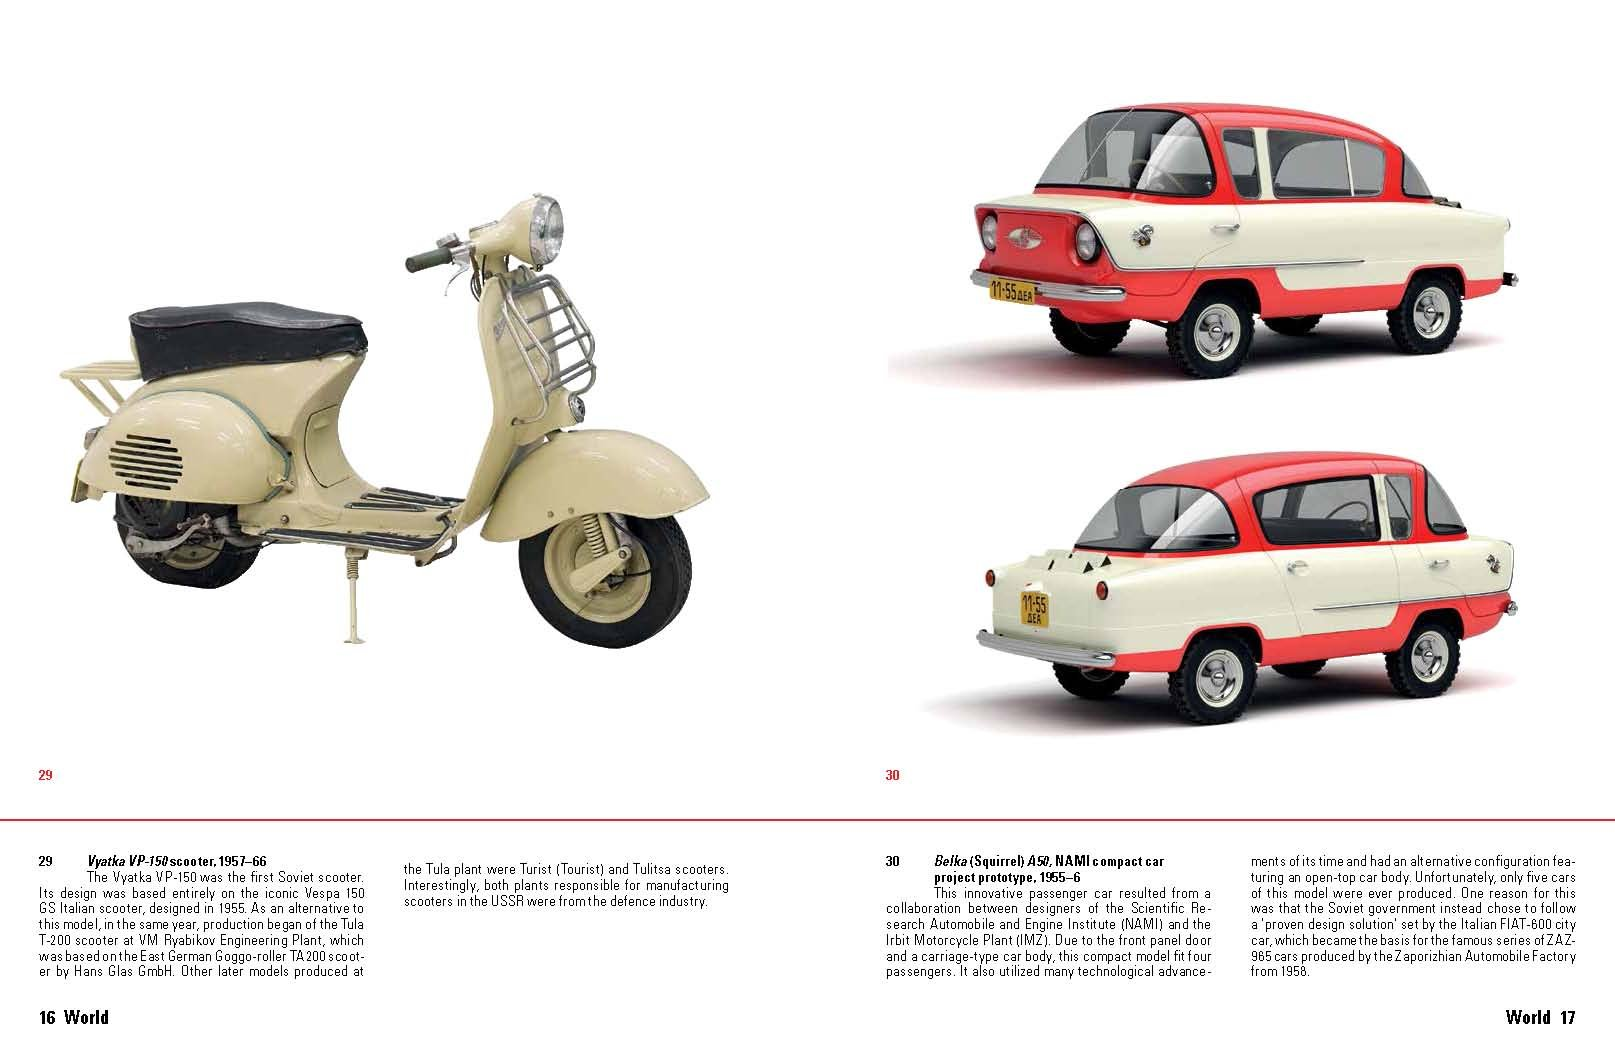 Designed in the USSR 7